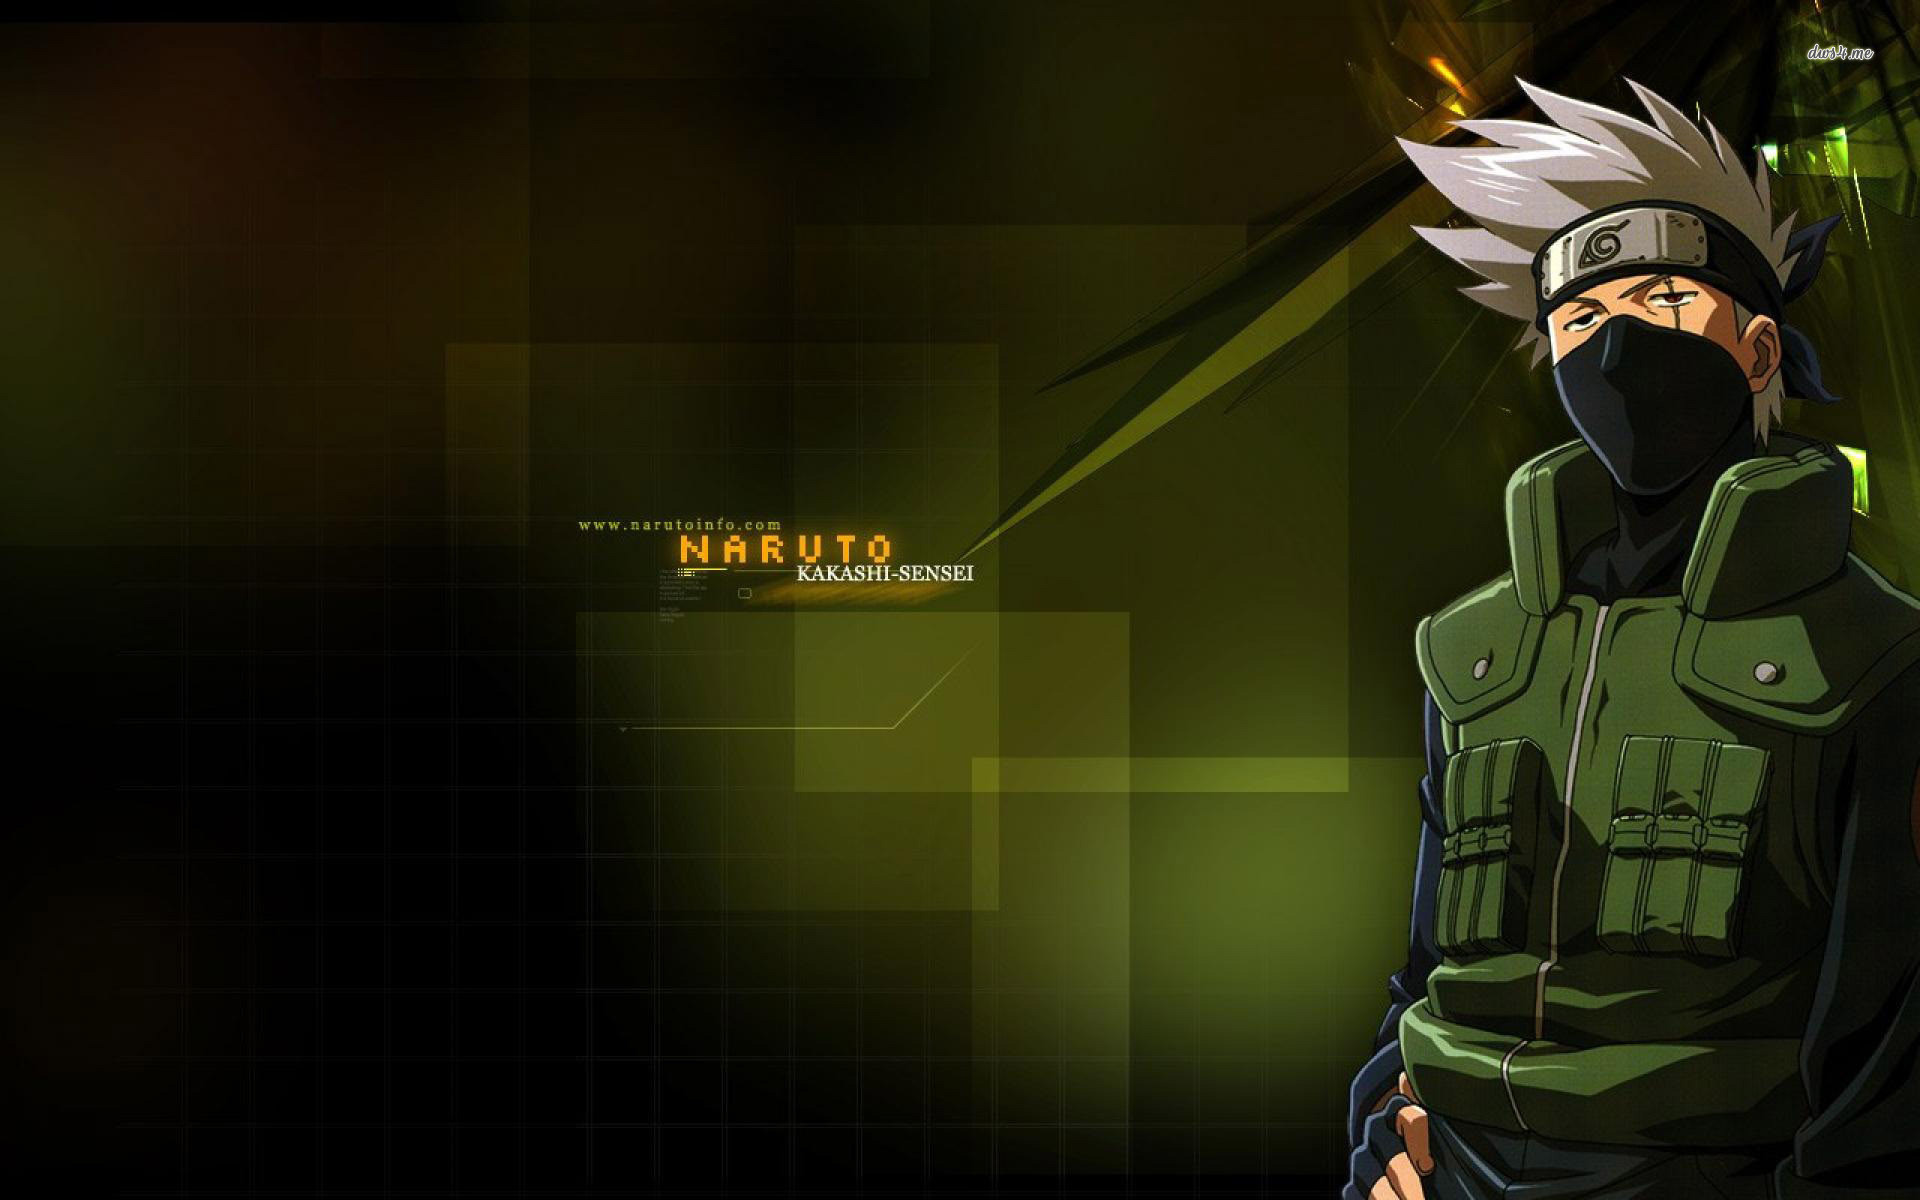 Hatake kakashi wallpapers 71 images - Kakashi sensei wallpaper ...